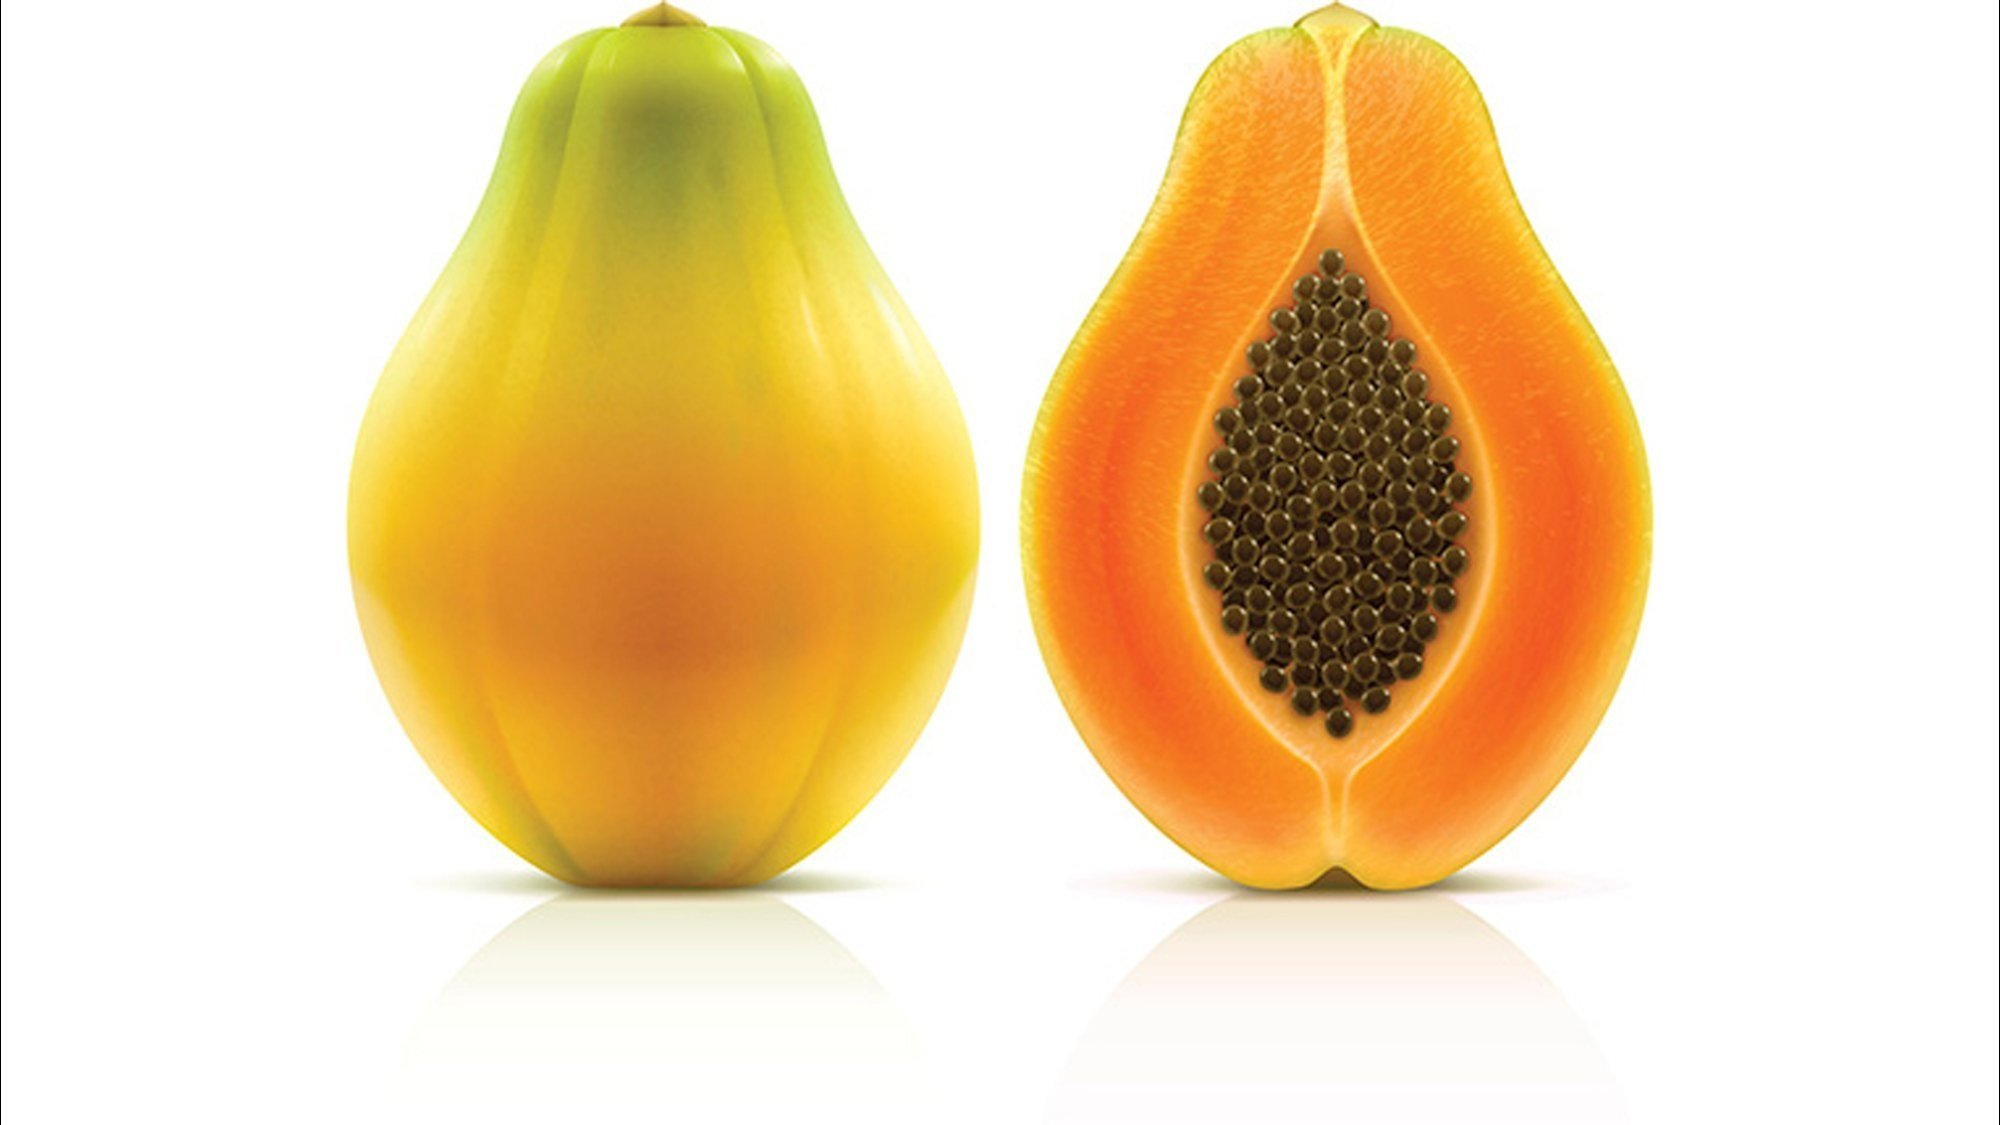 Forty-seven people in 12 states have become infected with salmonella believed to be linked to yellow Maradol papayas.